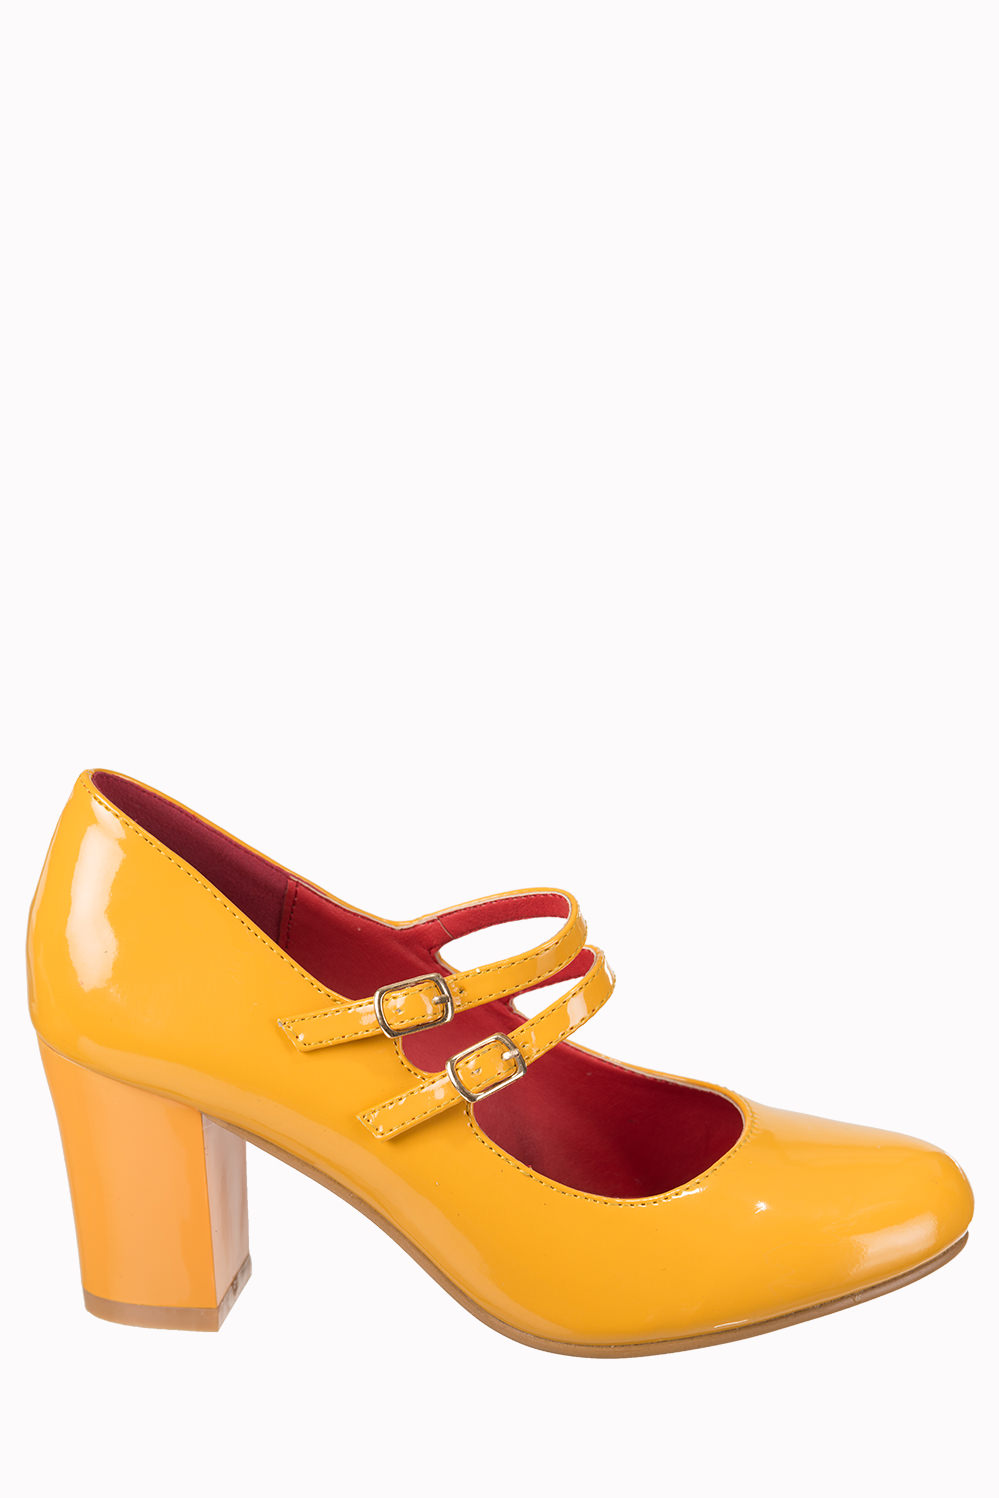 Dancing Days Golden Years 60s Patent Mustard Shoes